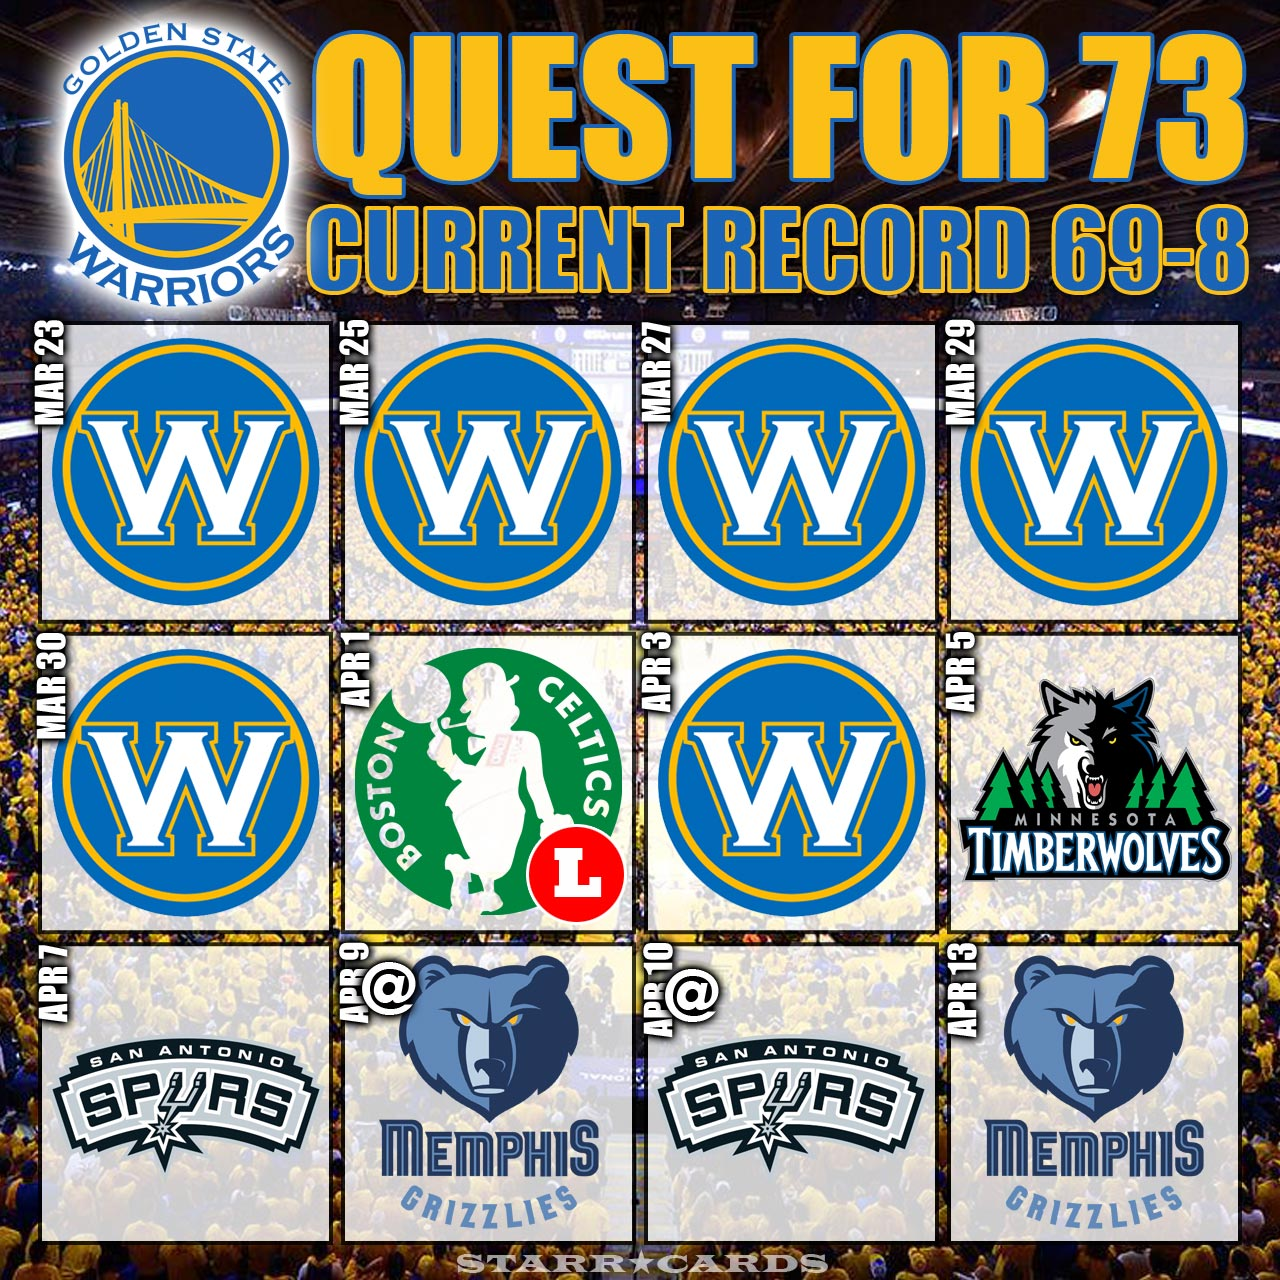 Quest for 73: Warriors move to 69-8 after dispatching Blazers